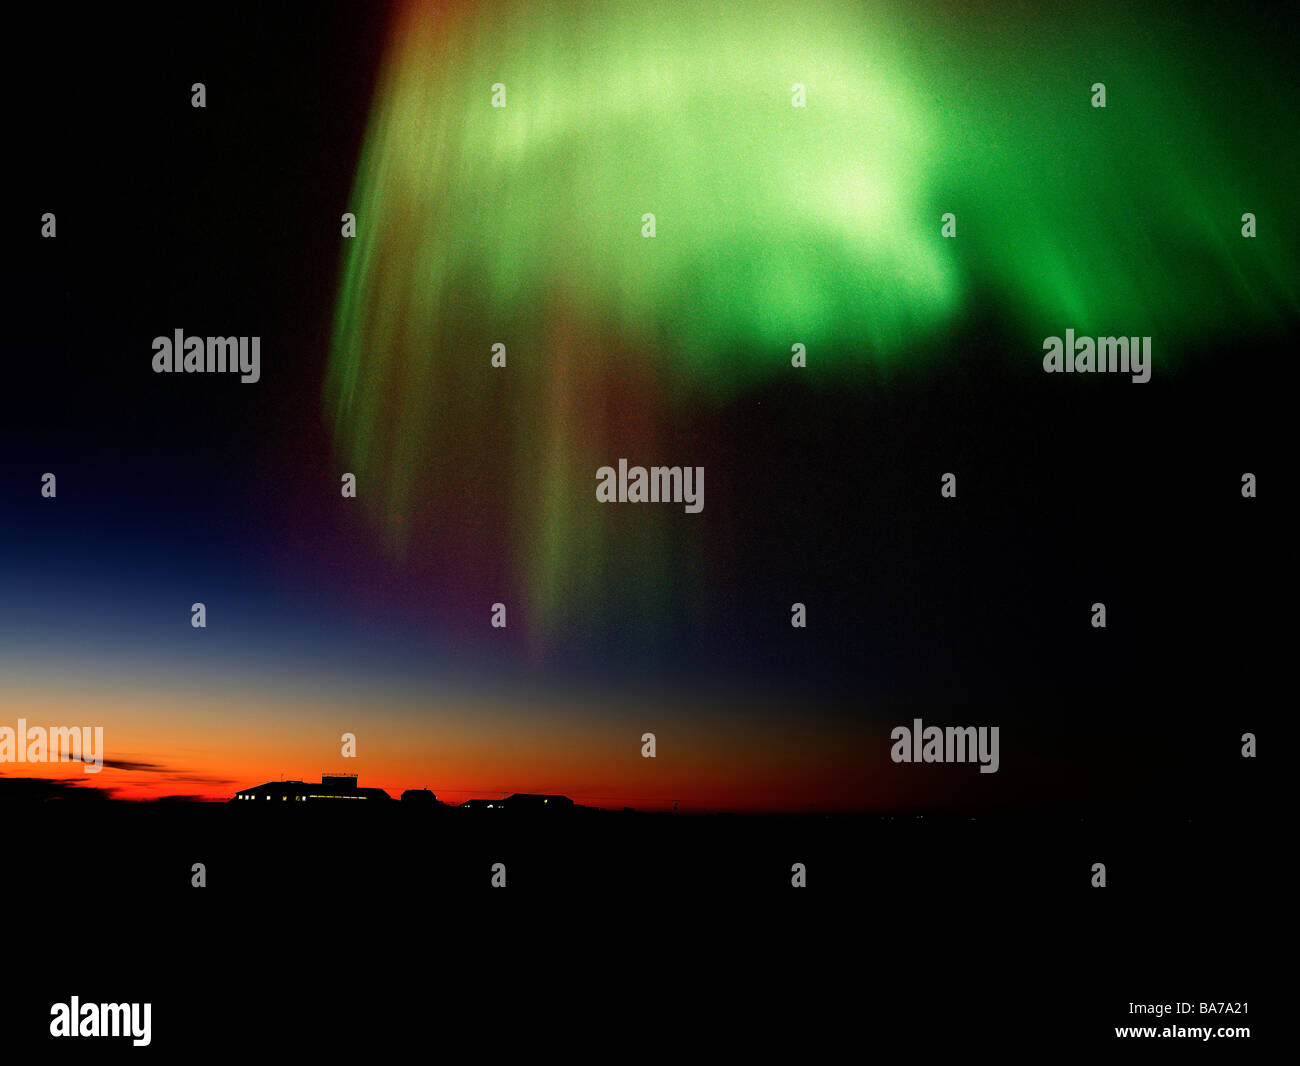 Aurora Borealis or Northern Lights, Iceland - Stock Image